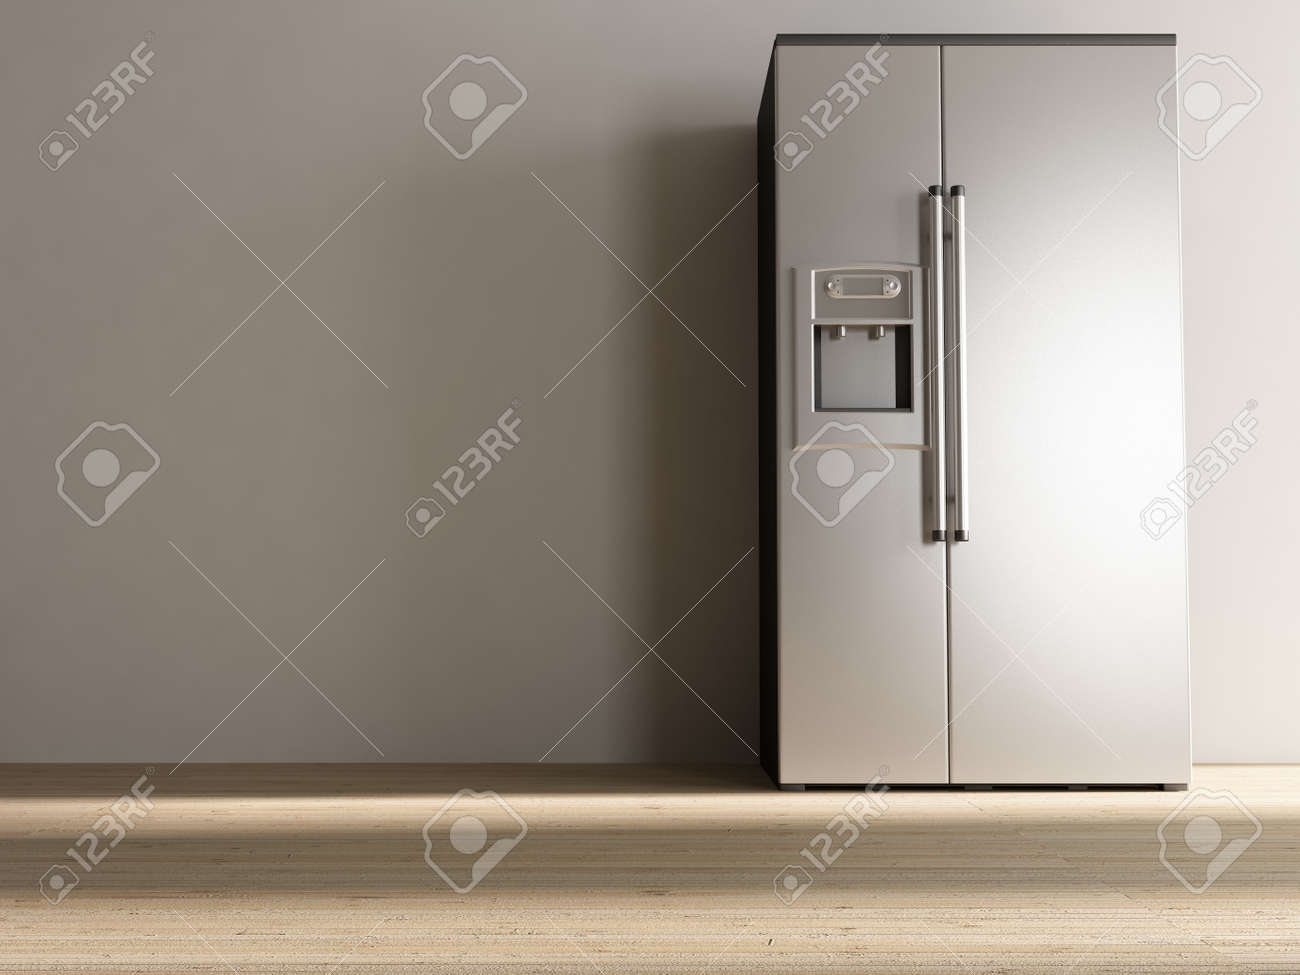 Large Refrigerator to face a blank white wall - 5688352